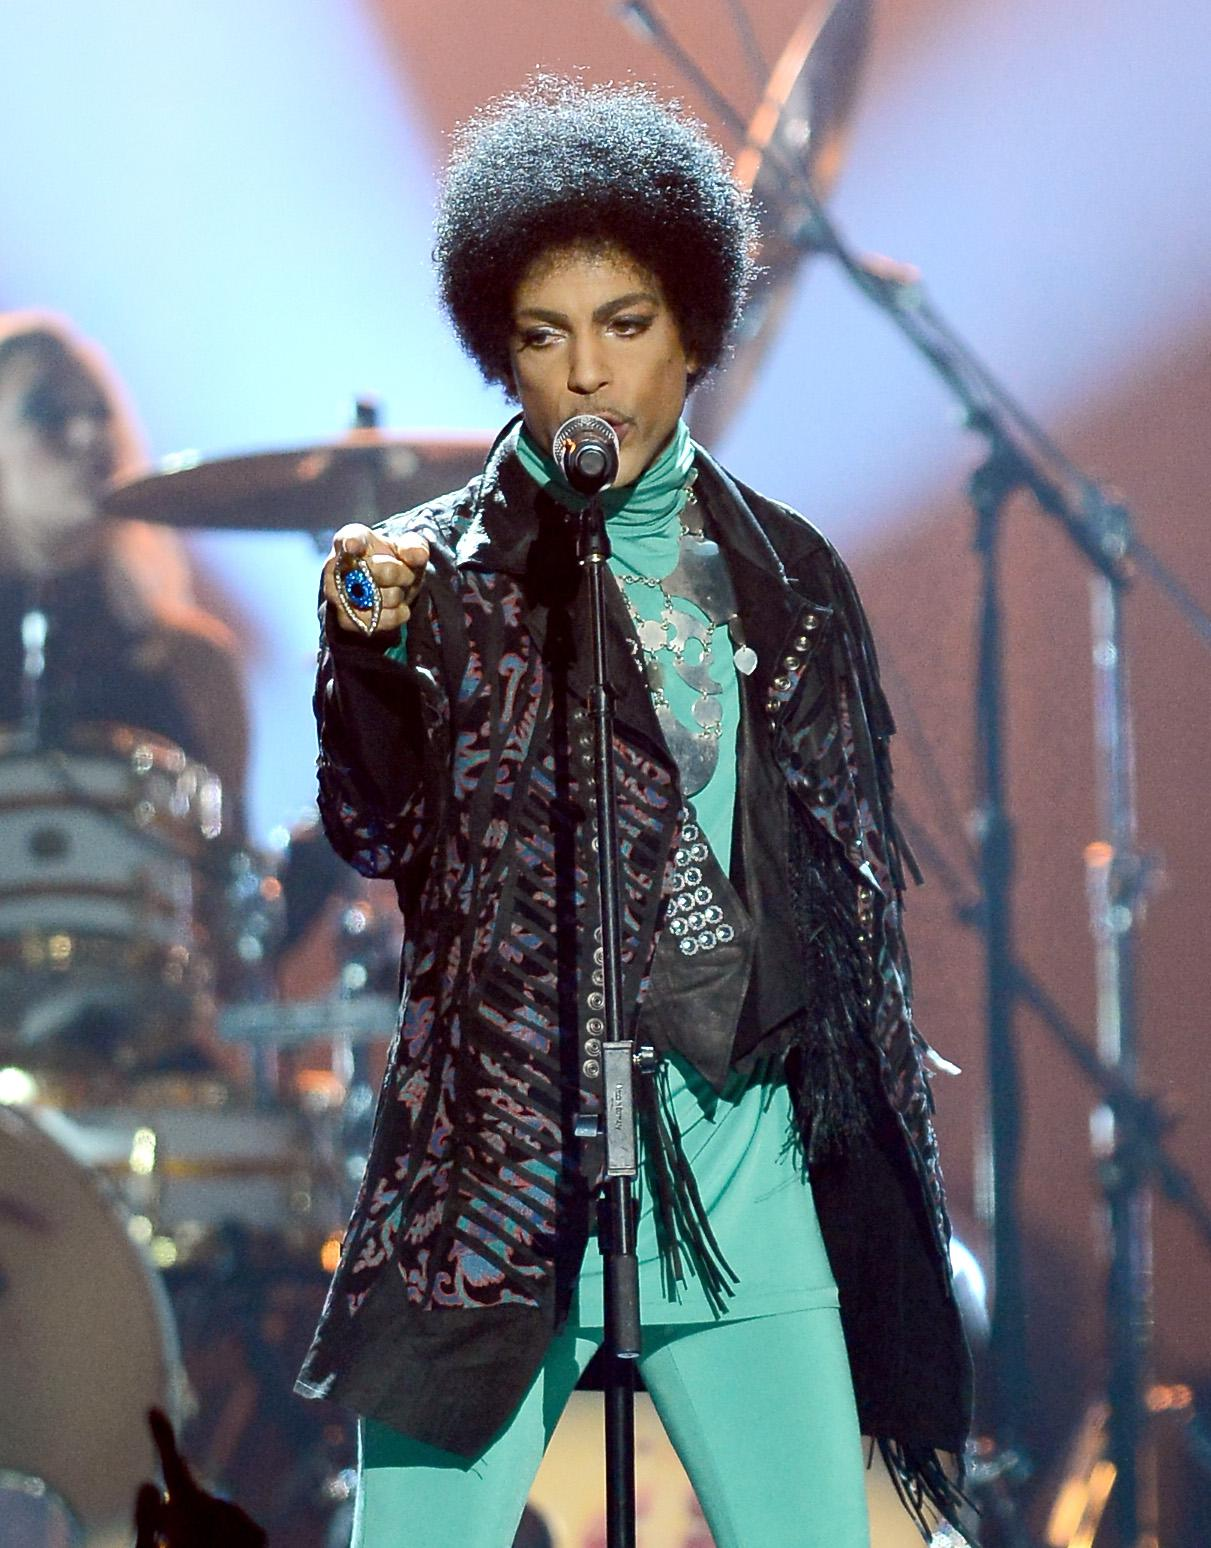 Prince stands in front of a microphone, points toward the camera.